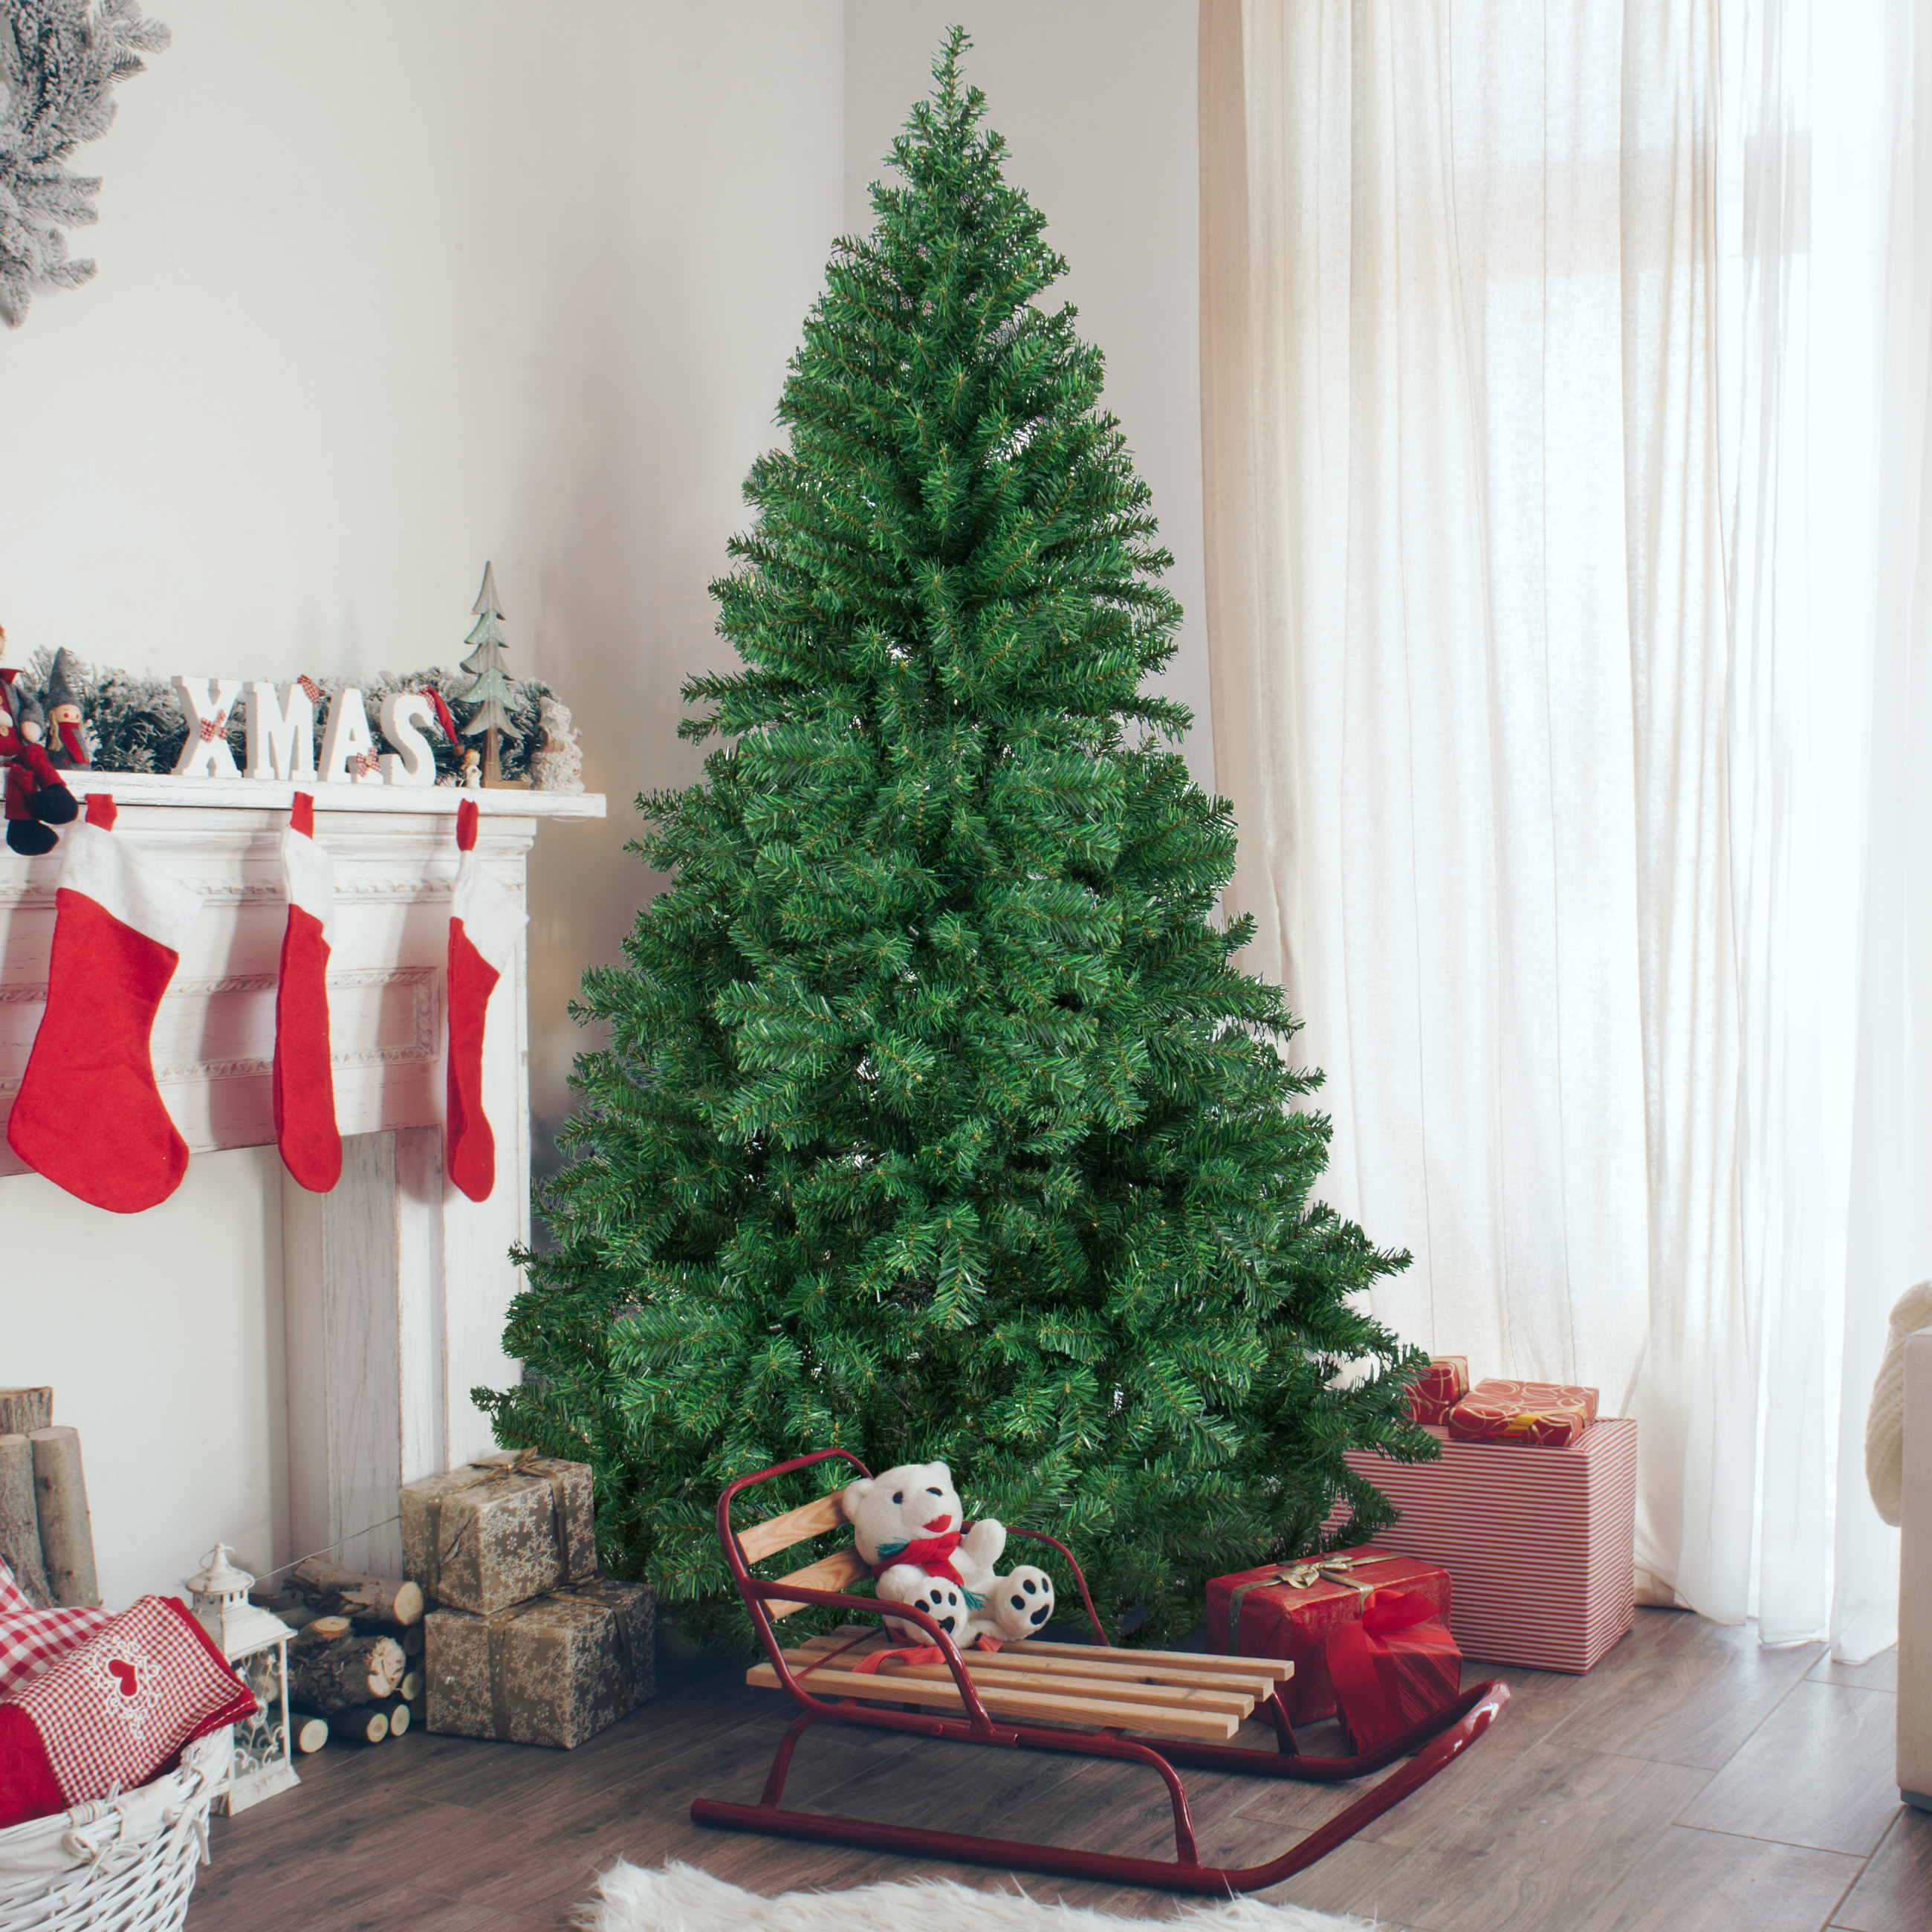 6' Premium Artificial Christmas Pine Tree With Solid Metal Legs 1000 Tips Full Tree